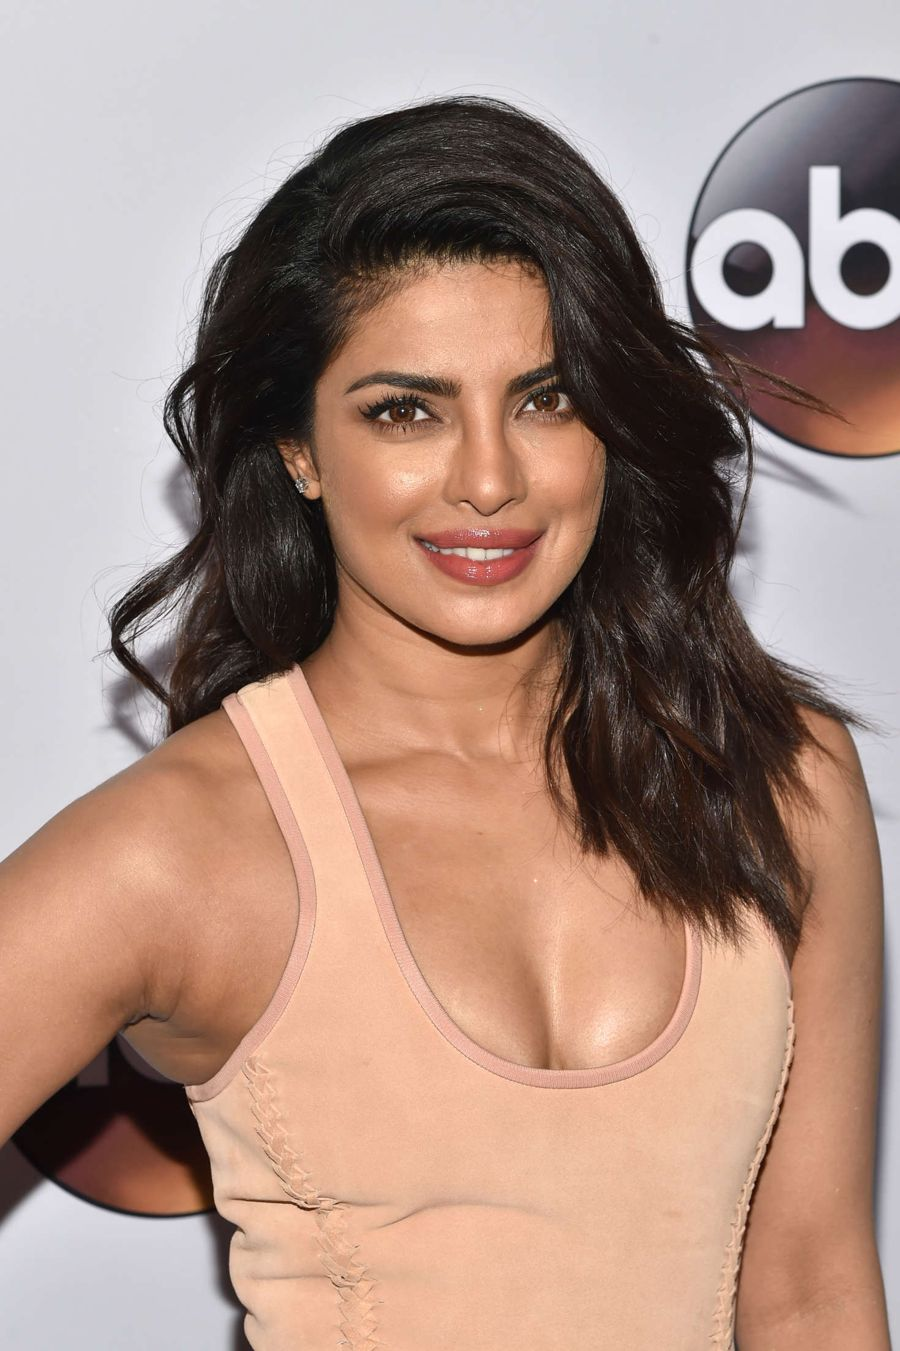 Priyanka Chopra - 2016 ABC Upfront in New York